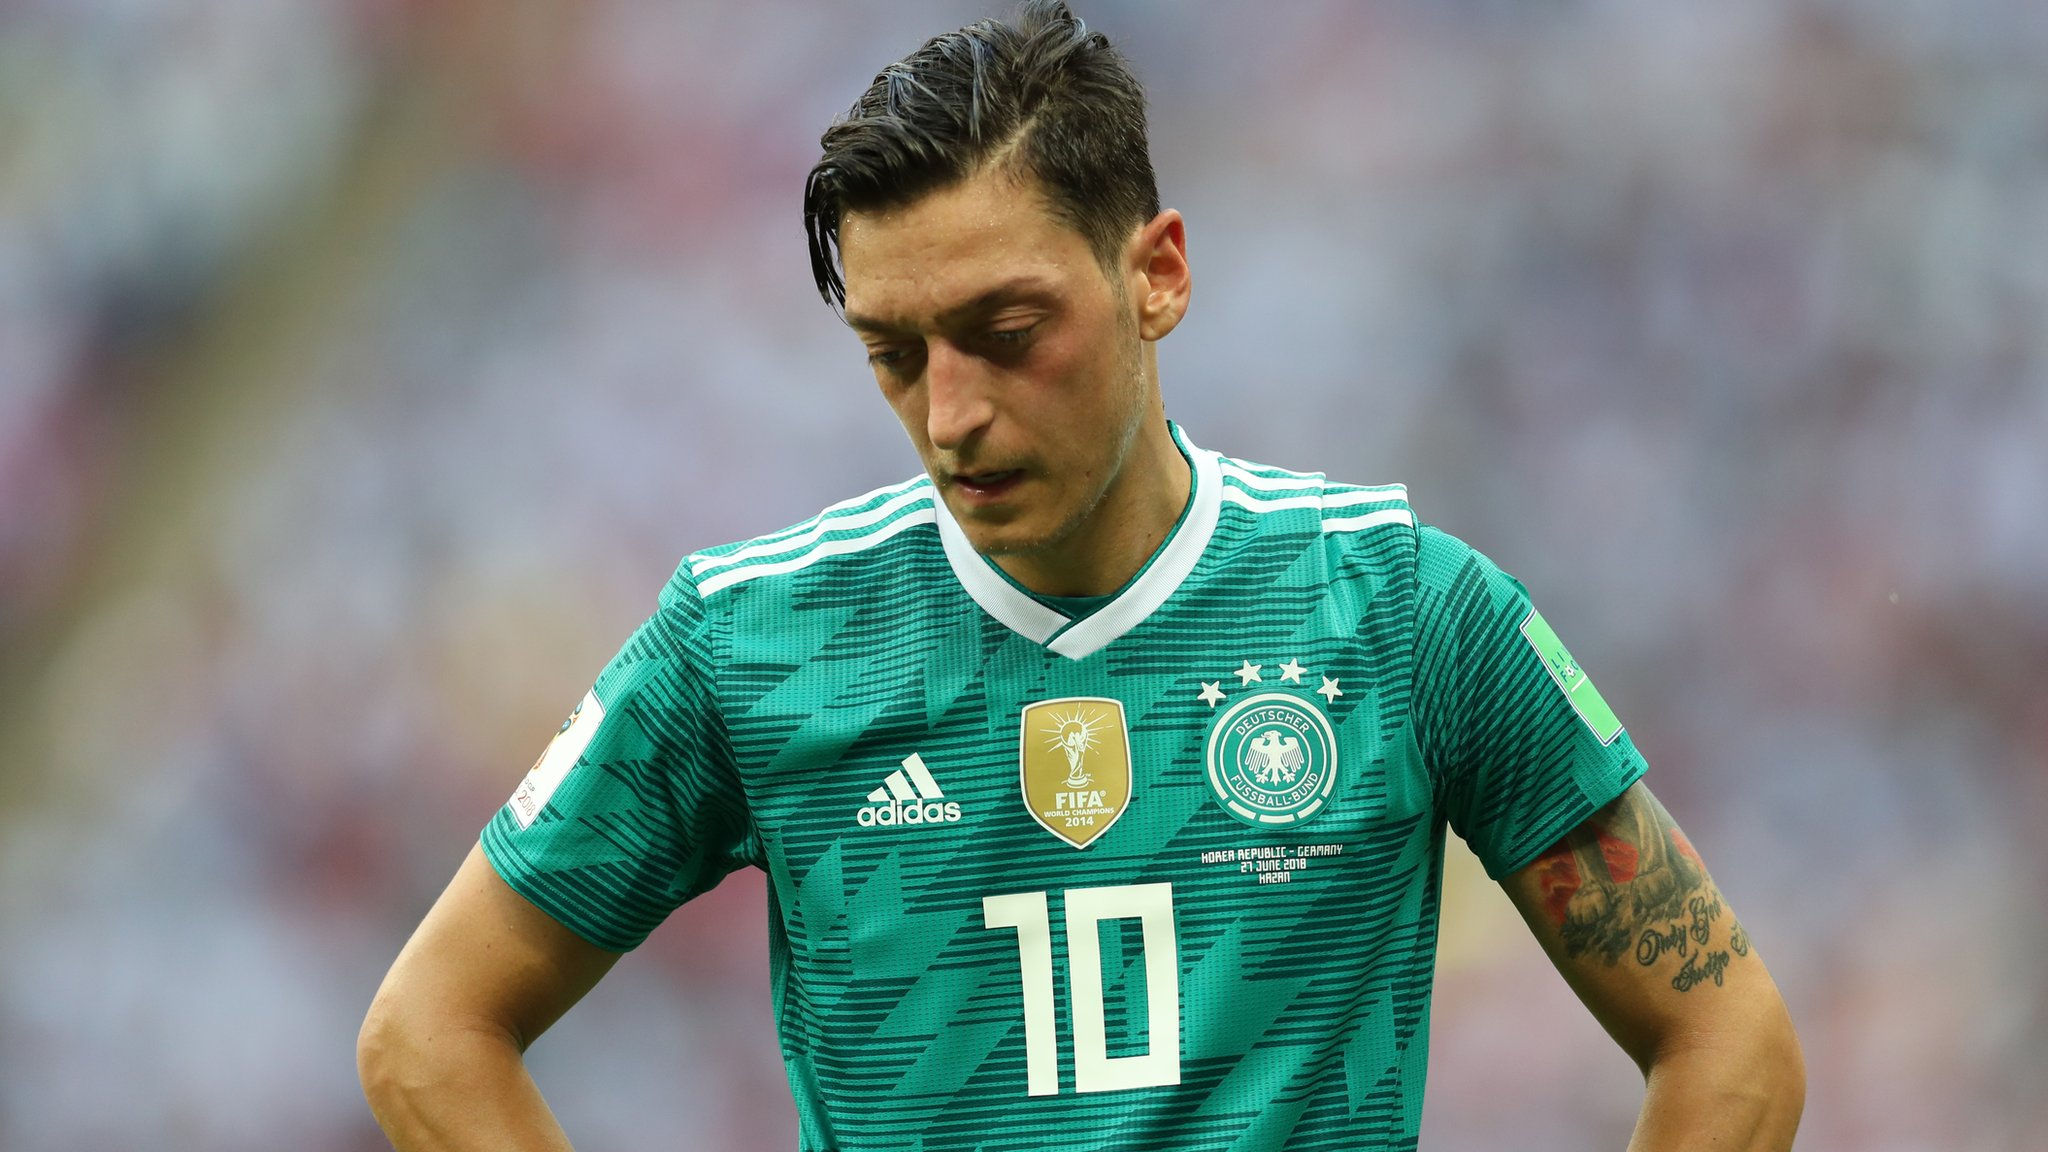 Mesut Ozil: Arsenal midfielder quits Germany over 'racism and disrespect'